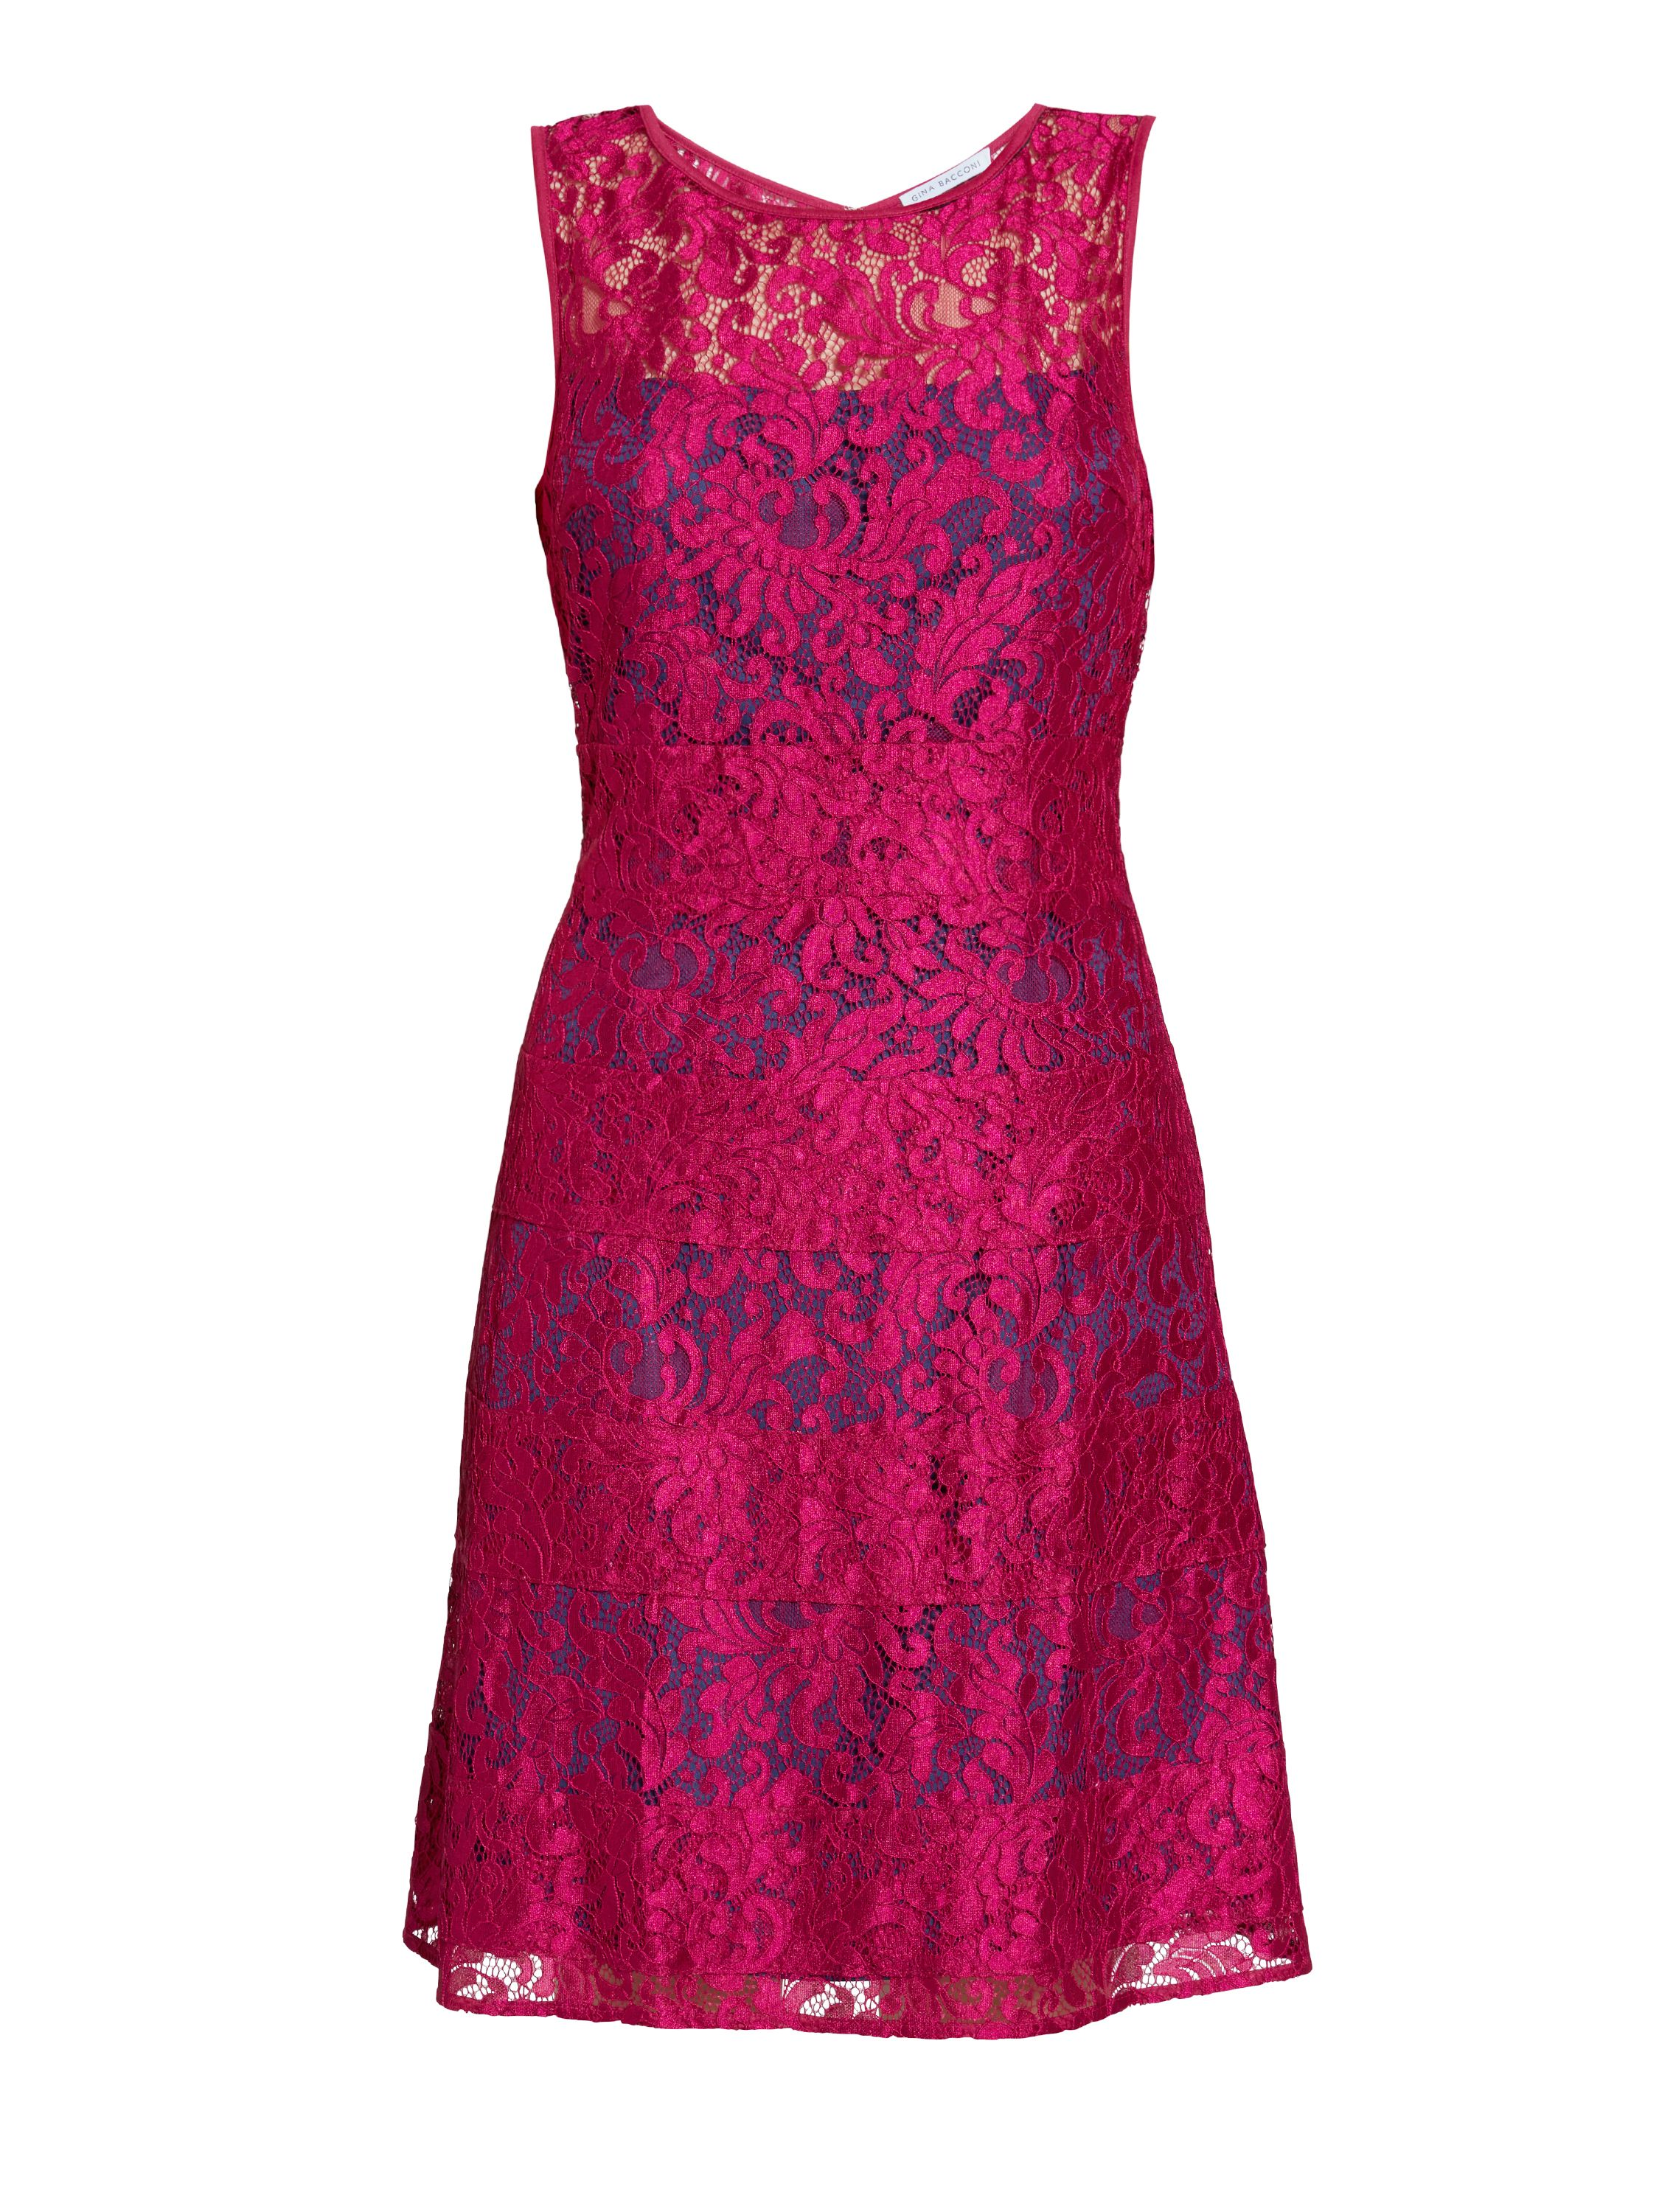 Gina Bacconi Bright Wine Scallop Eyelash Lace Dress, Blue